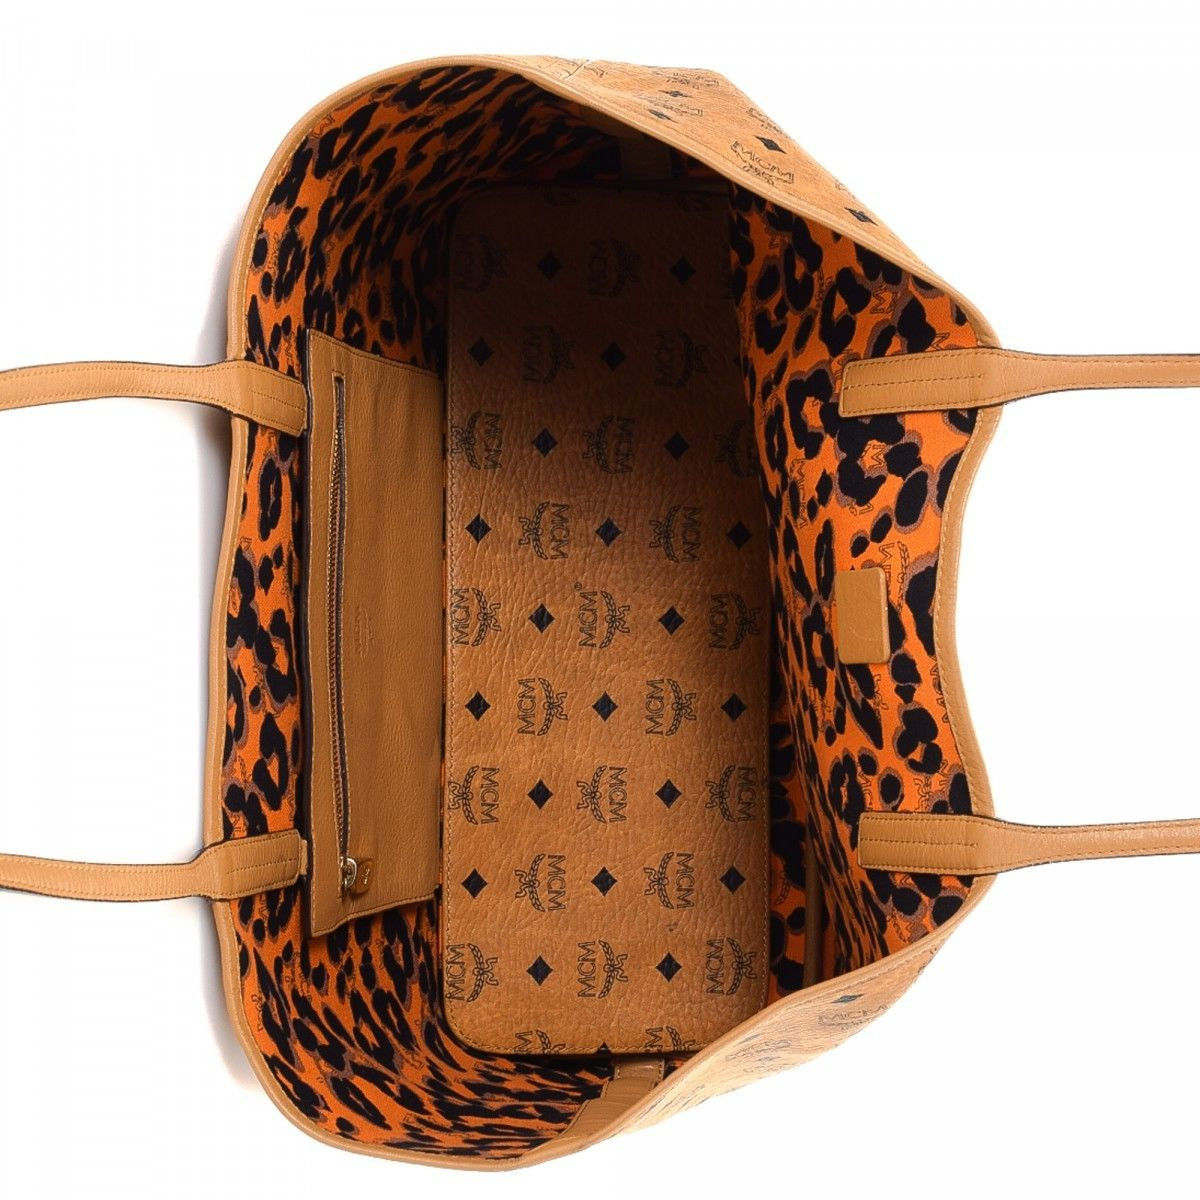 84a5788a954a MCM Leopard Print Reversible Tote. LXRandCo guarantees this is an authentic  vintage MCM Leopard Print Reversible tote. Crafted in visetos coated canvas  ...